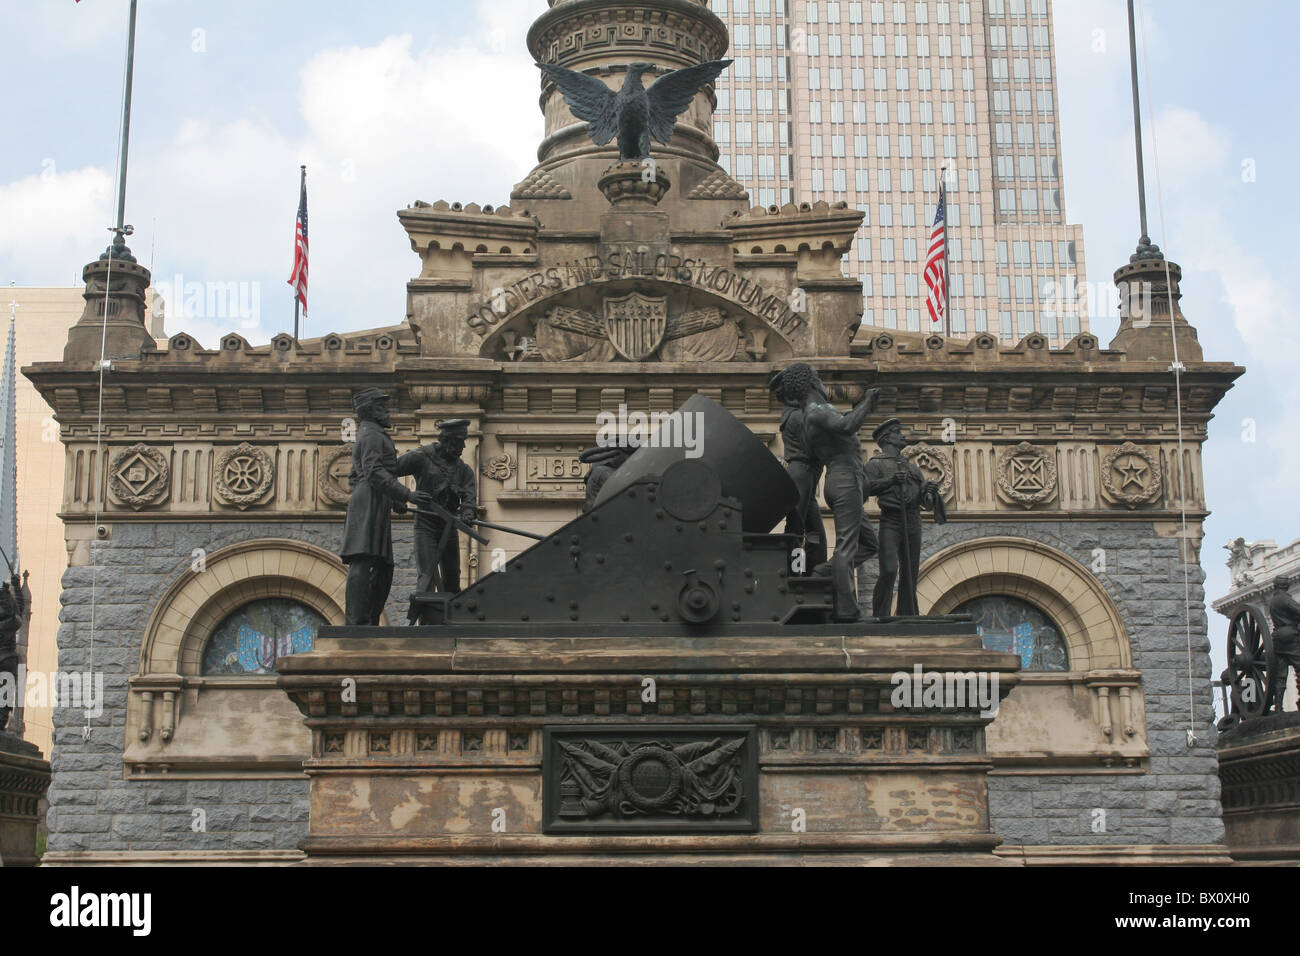 Cuyahoga County Soldiers and Sailors Monument. Cleveland, Ohio, USA. - Stock Image